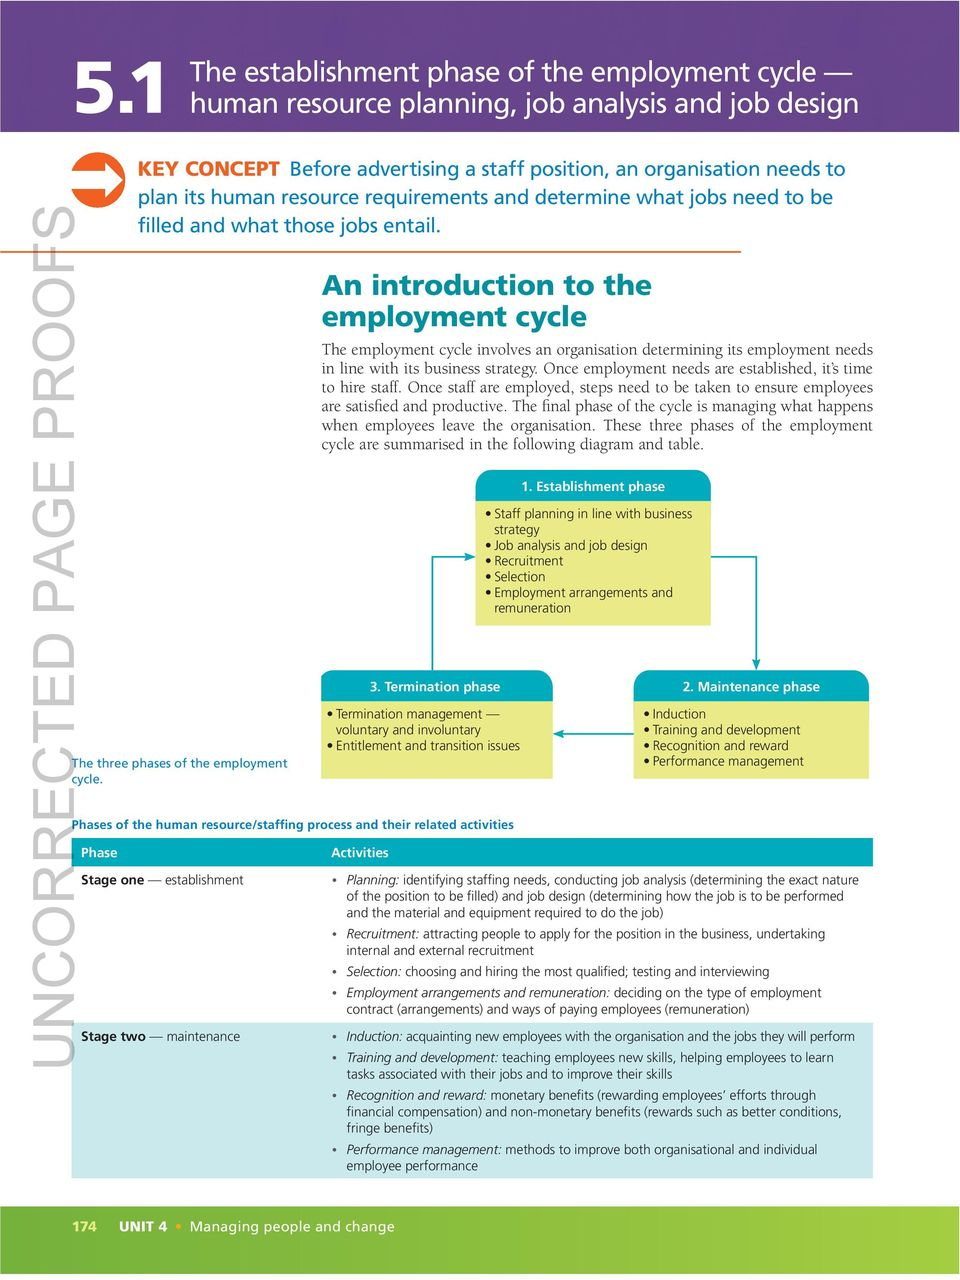 an introduction to the employment cycle The employment cycle involves an organisation determining its employment needs in line with its business strategy.